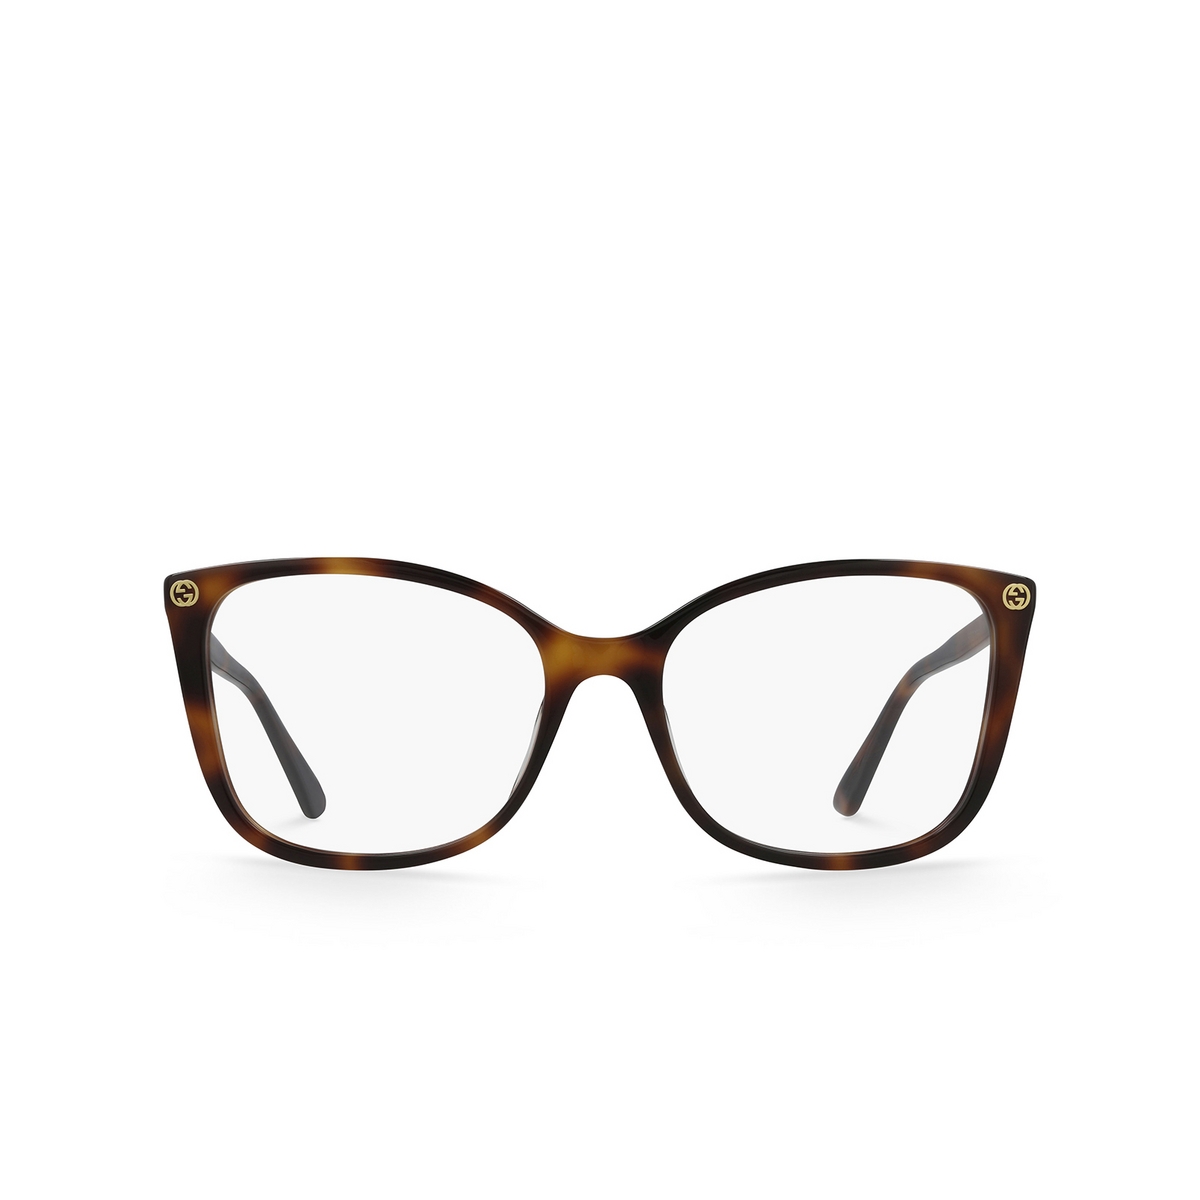 Gucci® Square Eyeglasses: GG0026O color Havana 002 - front view.